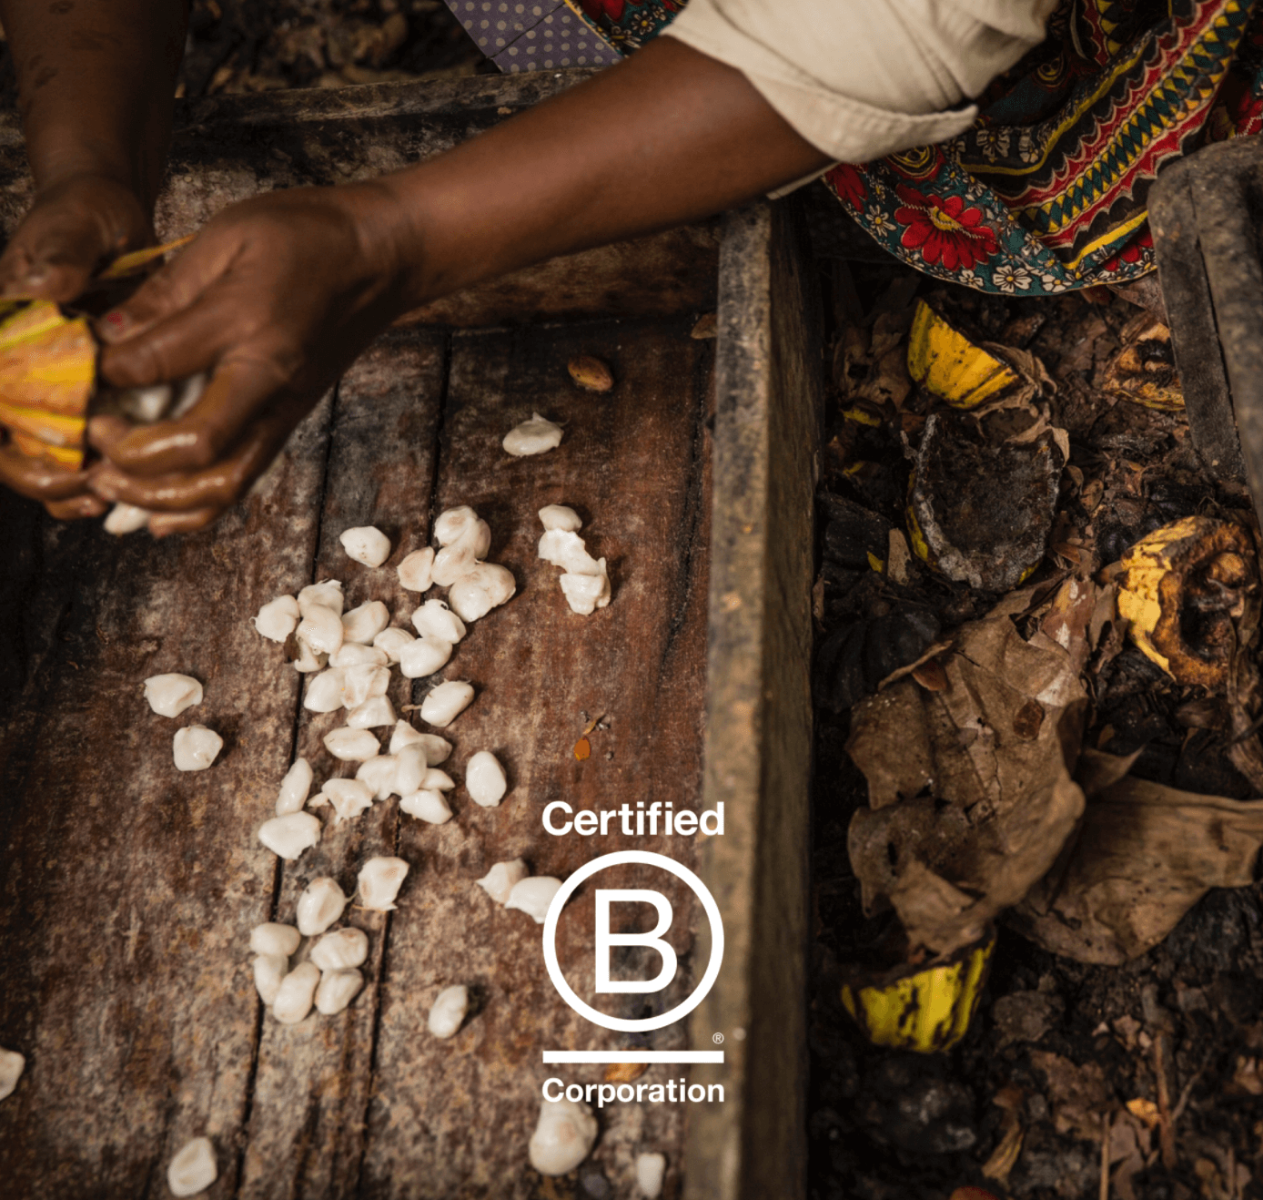 B Corp: The Future of the Cocoa Industry